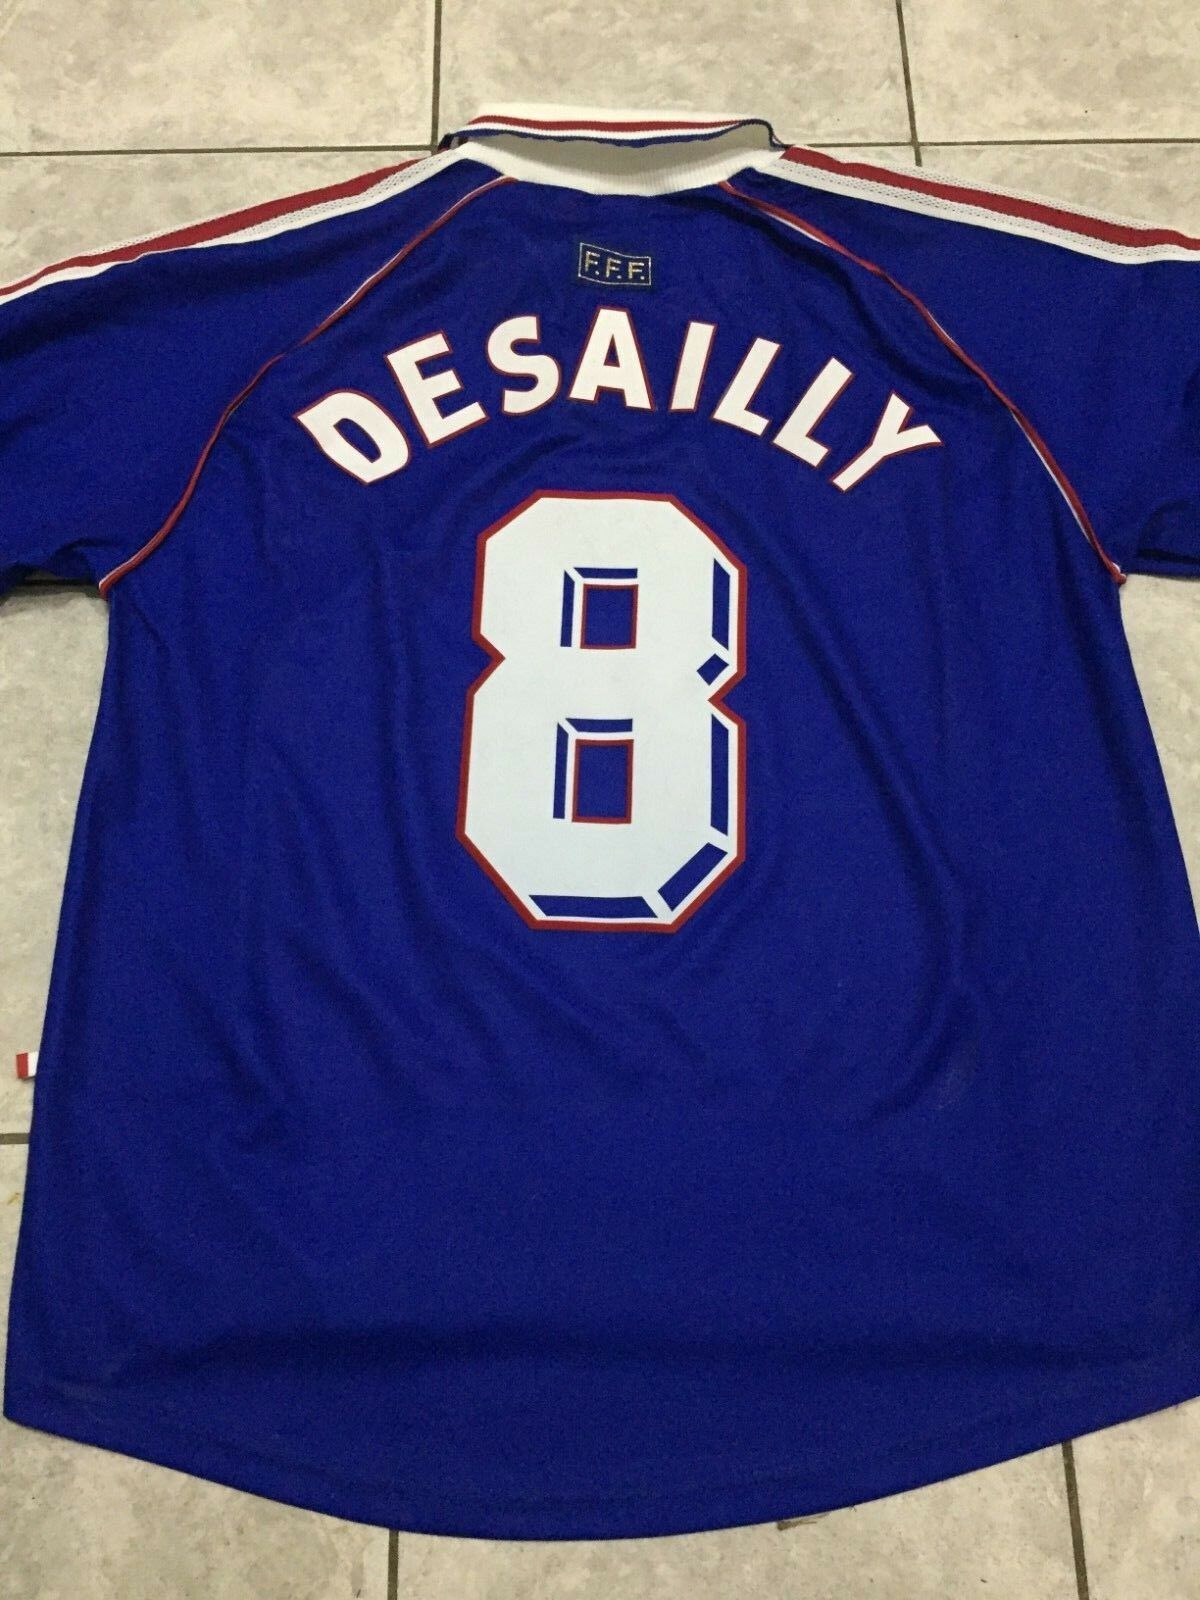 FRANCE 1998  Lted. Ed. SIGNED JERSEY DESSAILY  CHAMPION UNIQUE